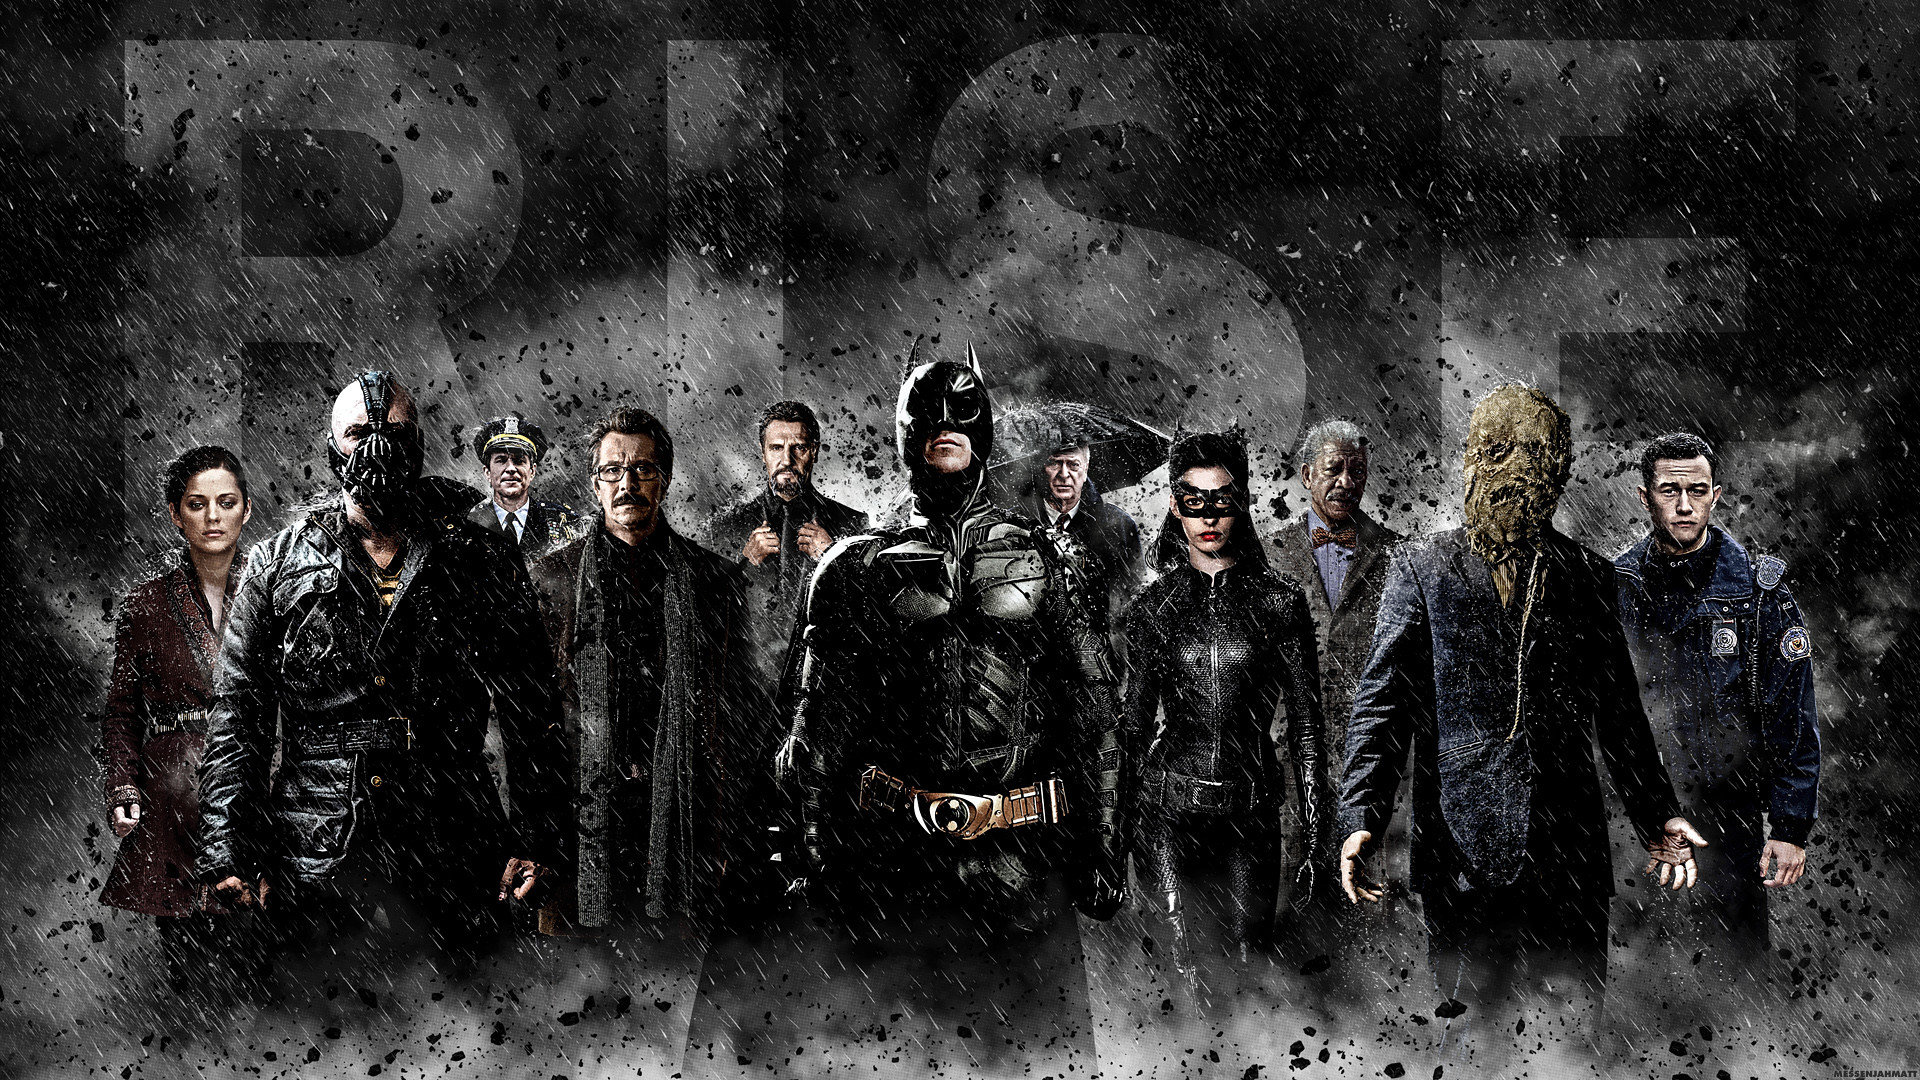 1920x1080 The Conservative New Ager and The Snark Who Hunts Back Review The Dark  Knight Rises: A Tale of Heroes, Politics and Death